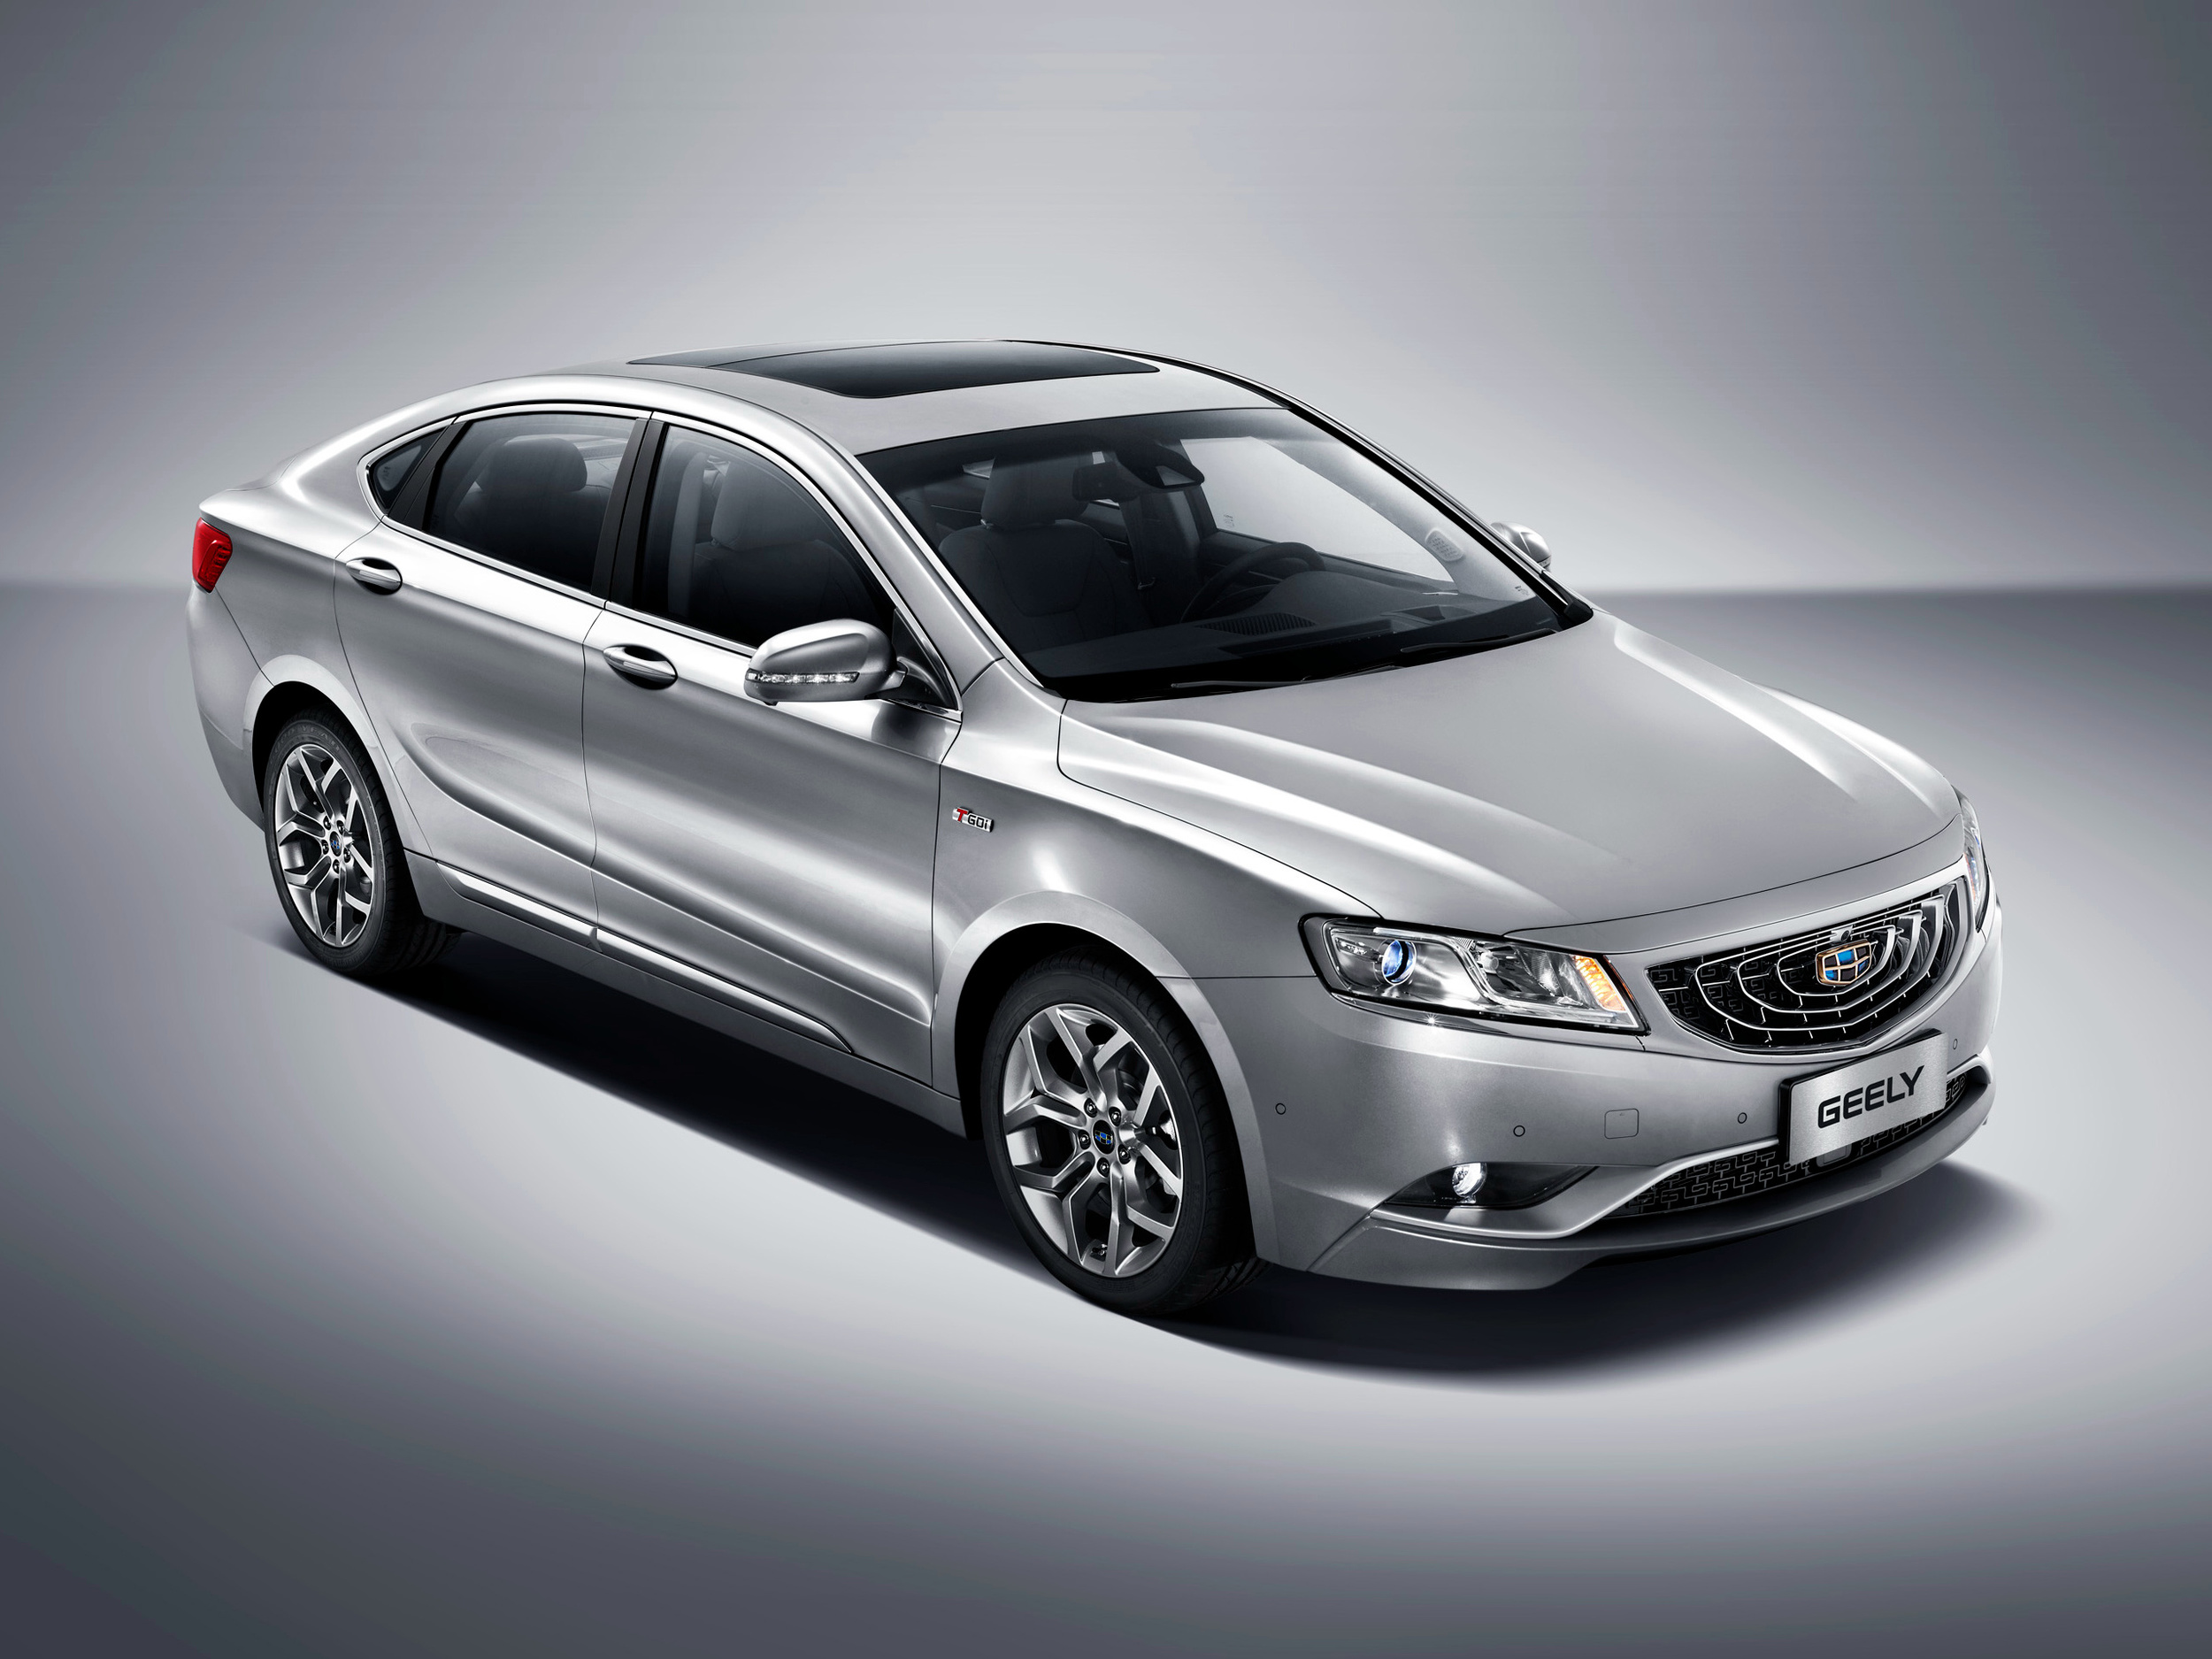 Geely GC9 wins Chinese Car of the Year